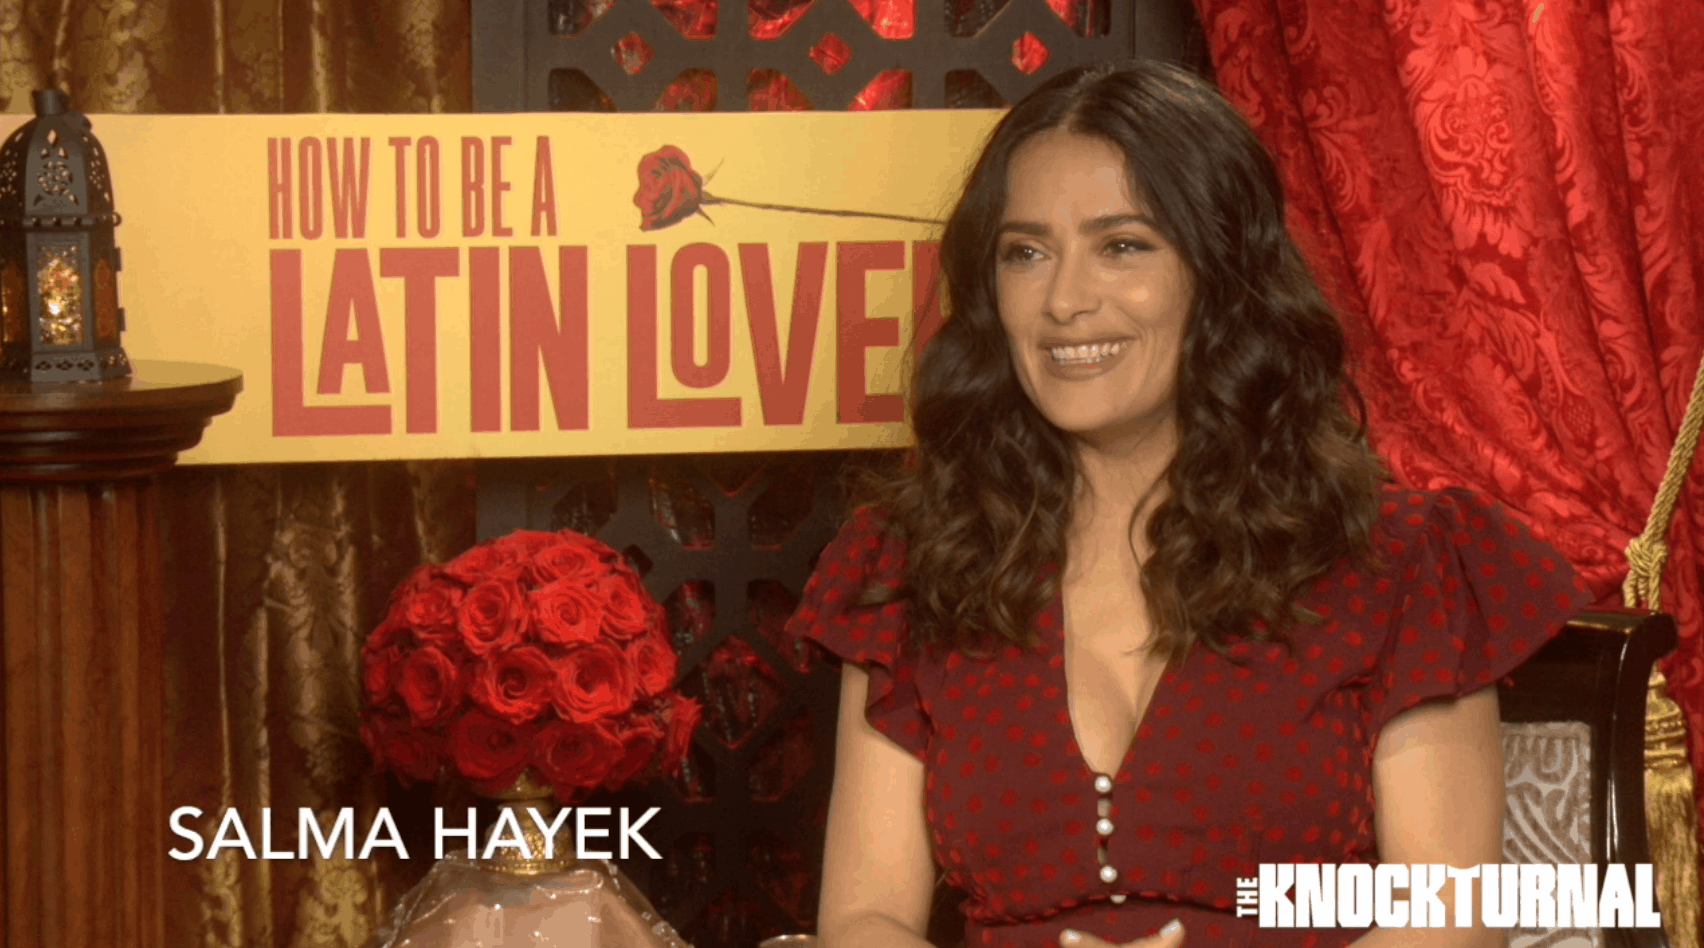 Exclusive: Salma Hayek, Eugenio Derbez, Raphael Alejandro Talk 'how To Be A Latin  Lover' [video]  The Knockturnal